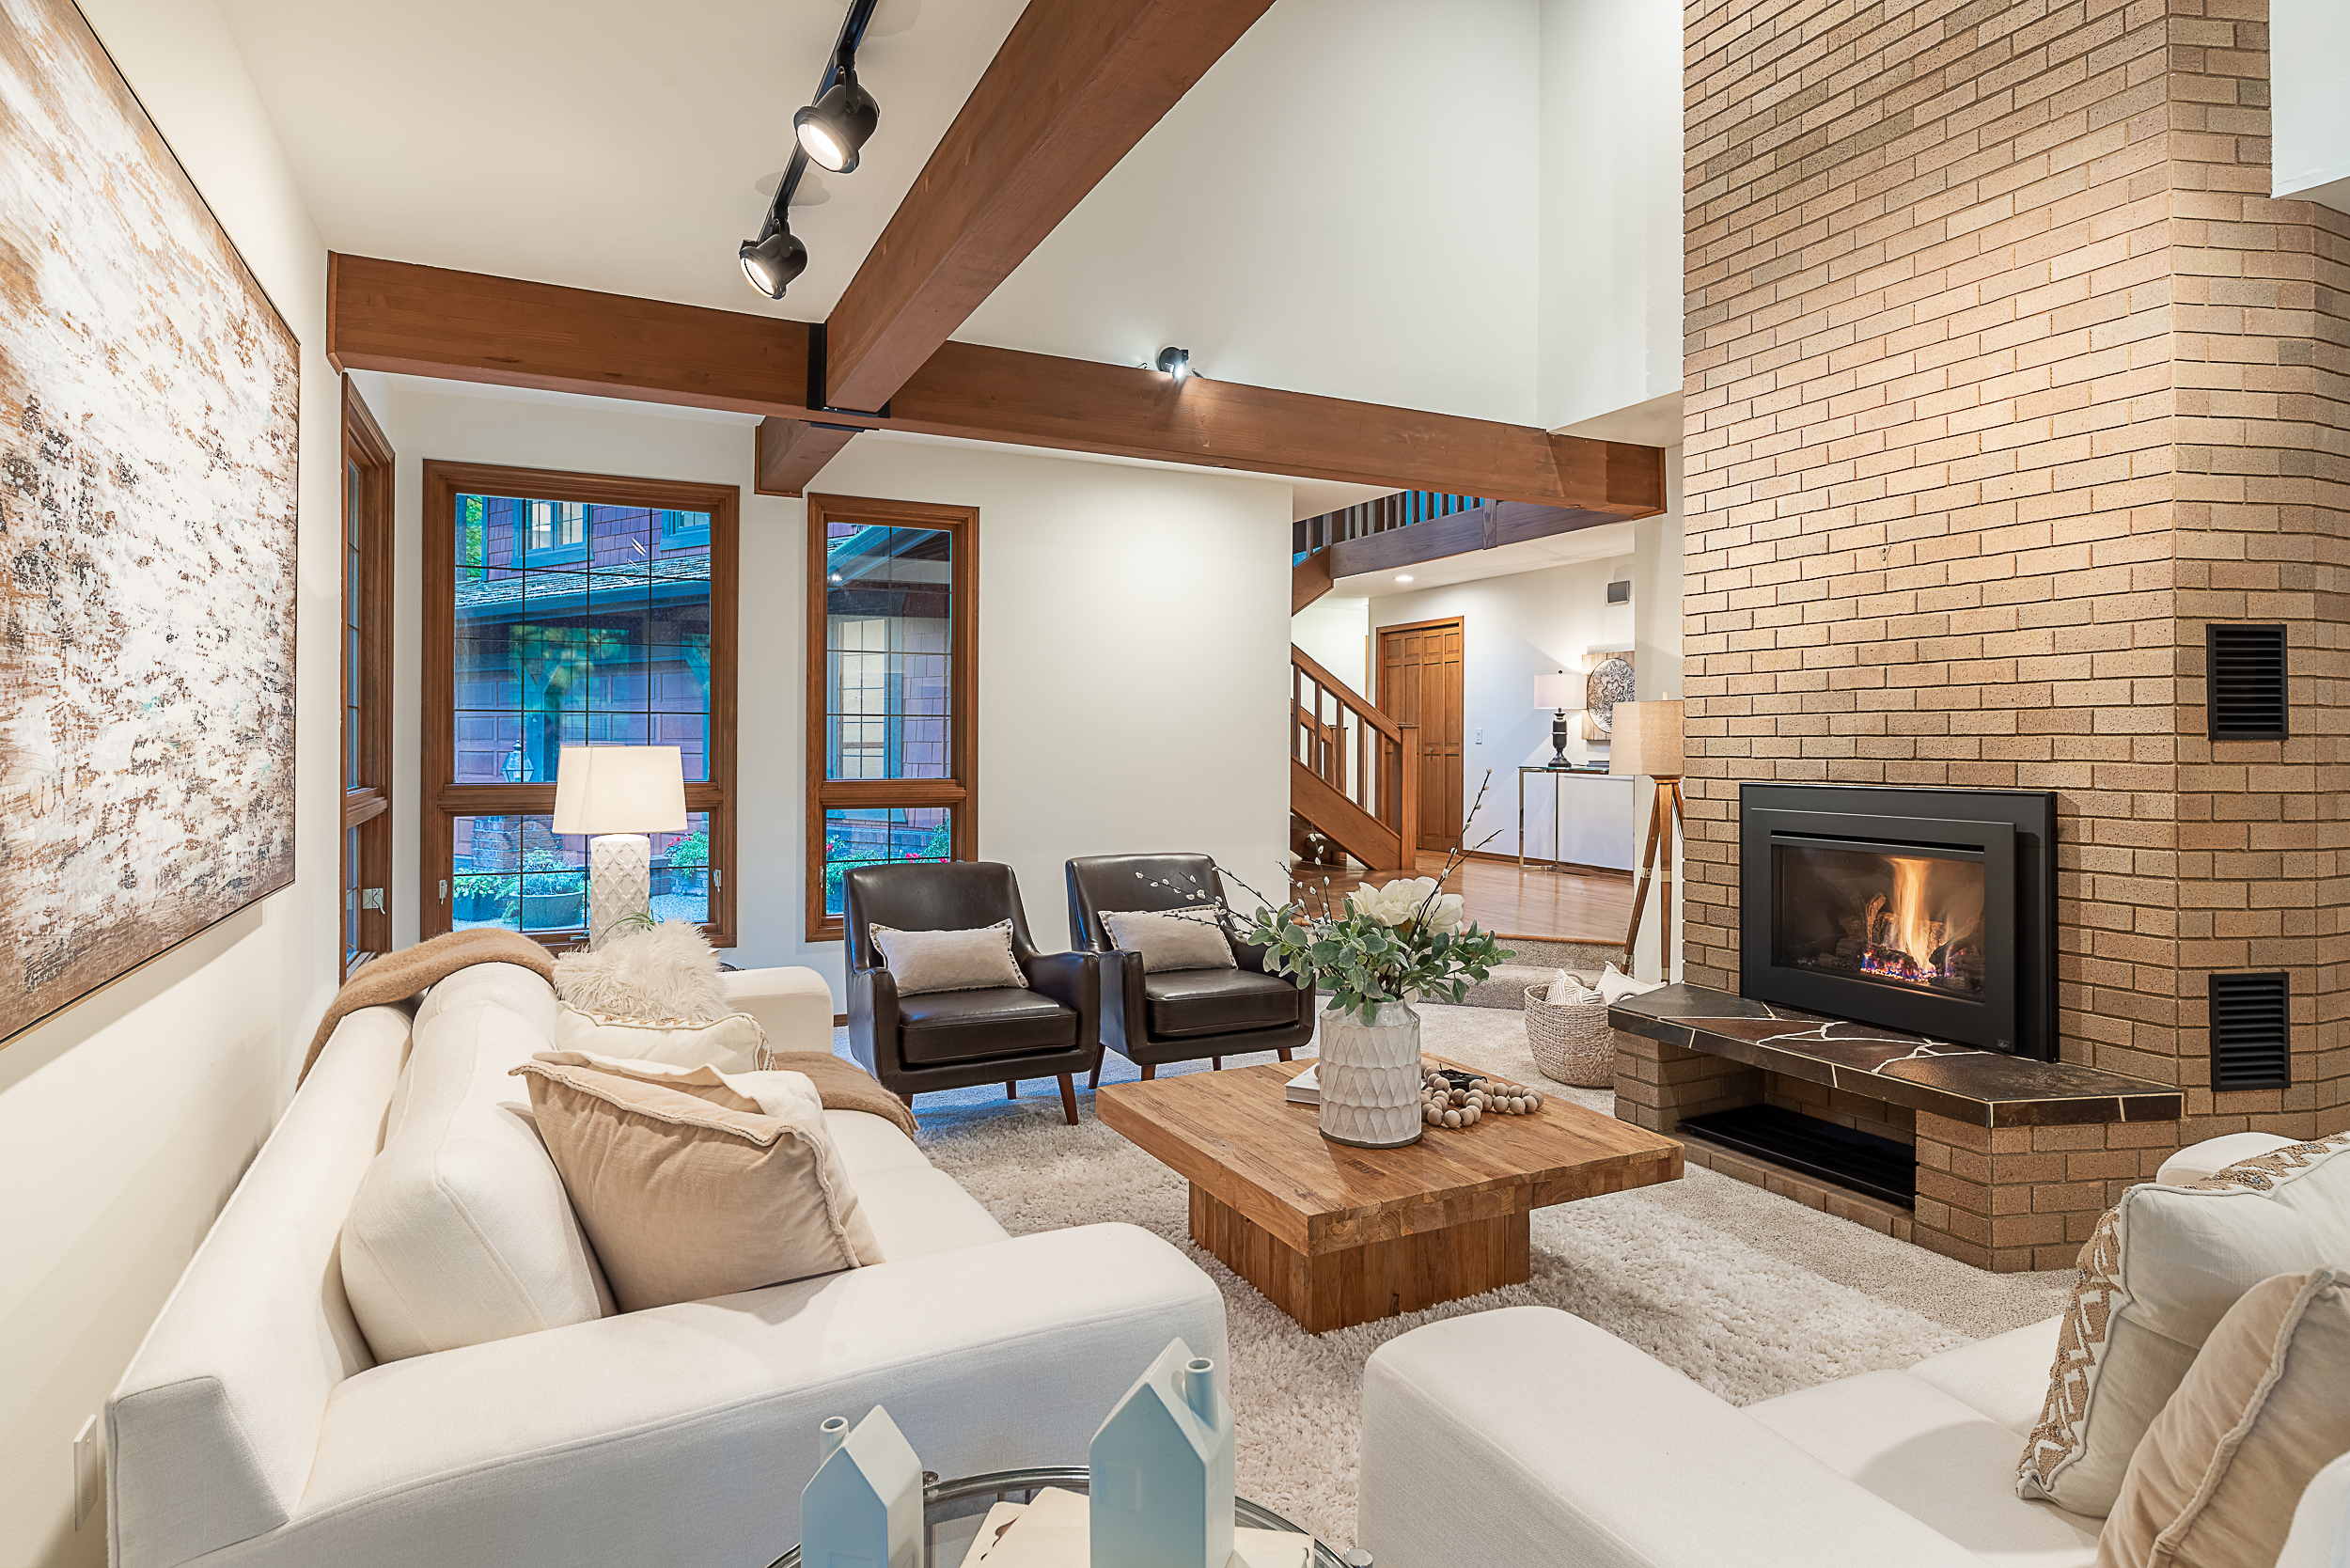 SOLD: Woodway Estates - Escape to your very own evergreen retreat ⟶$1.2M | 3 BR | 2.5 BA | 4,410 SQ. FT.